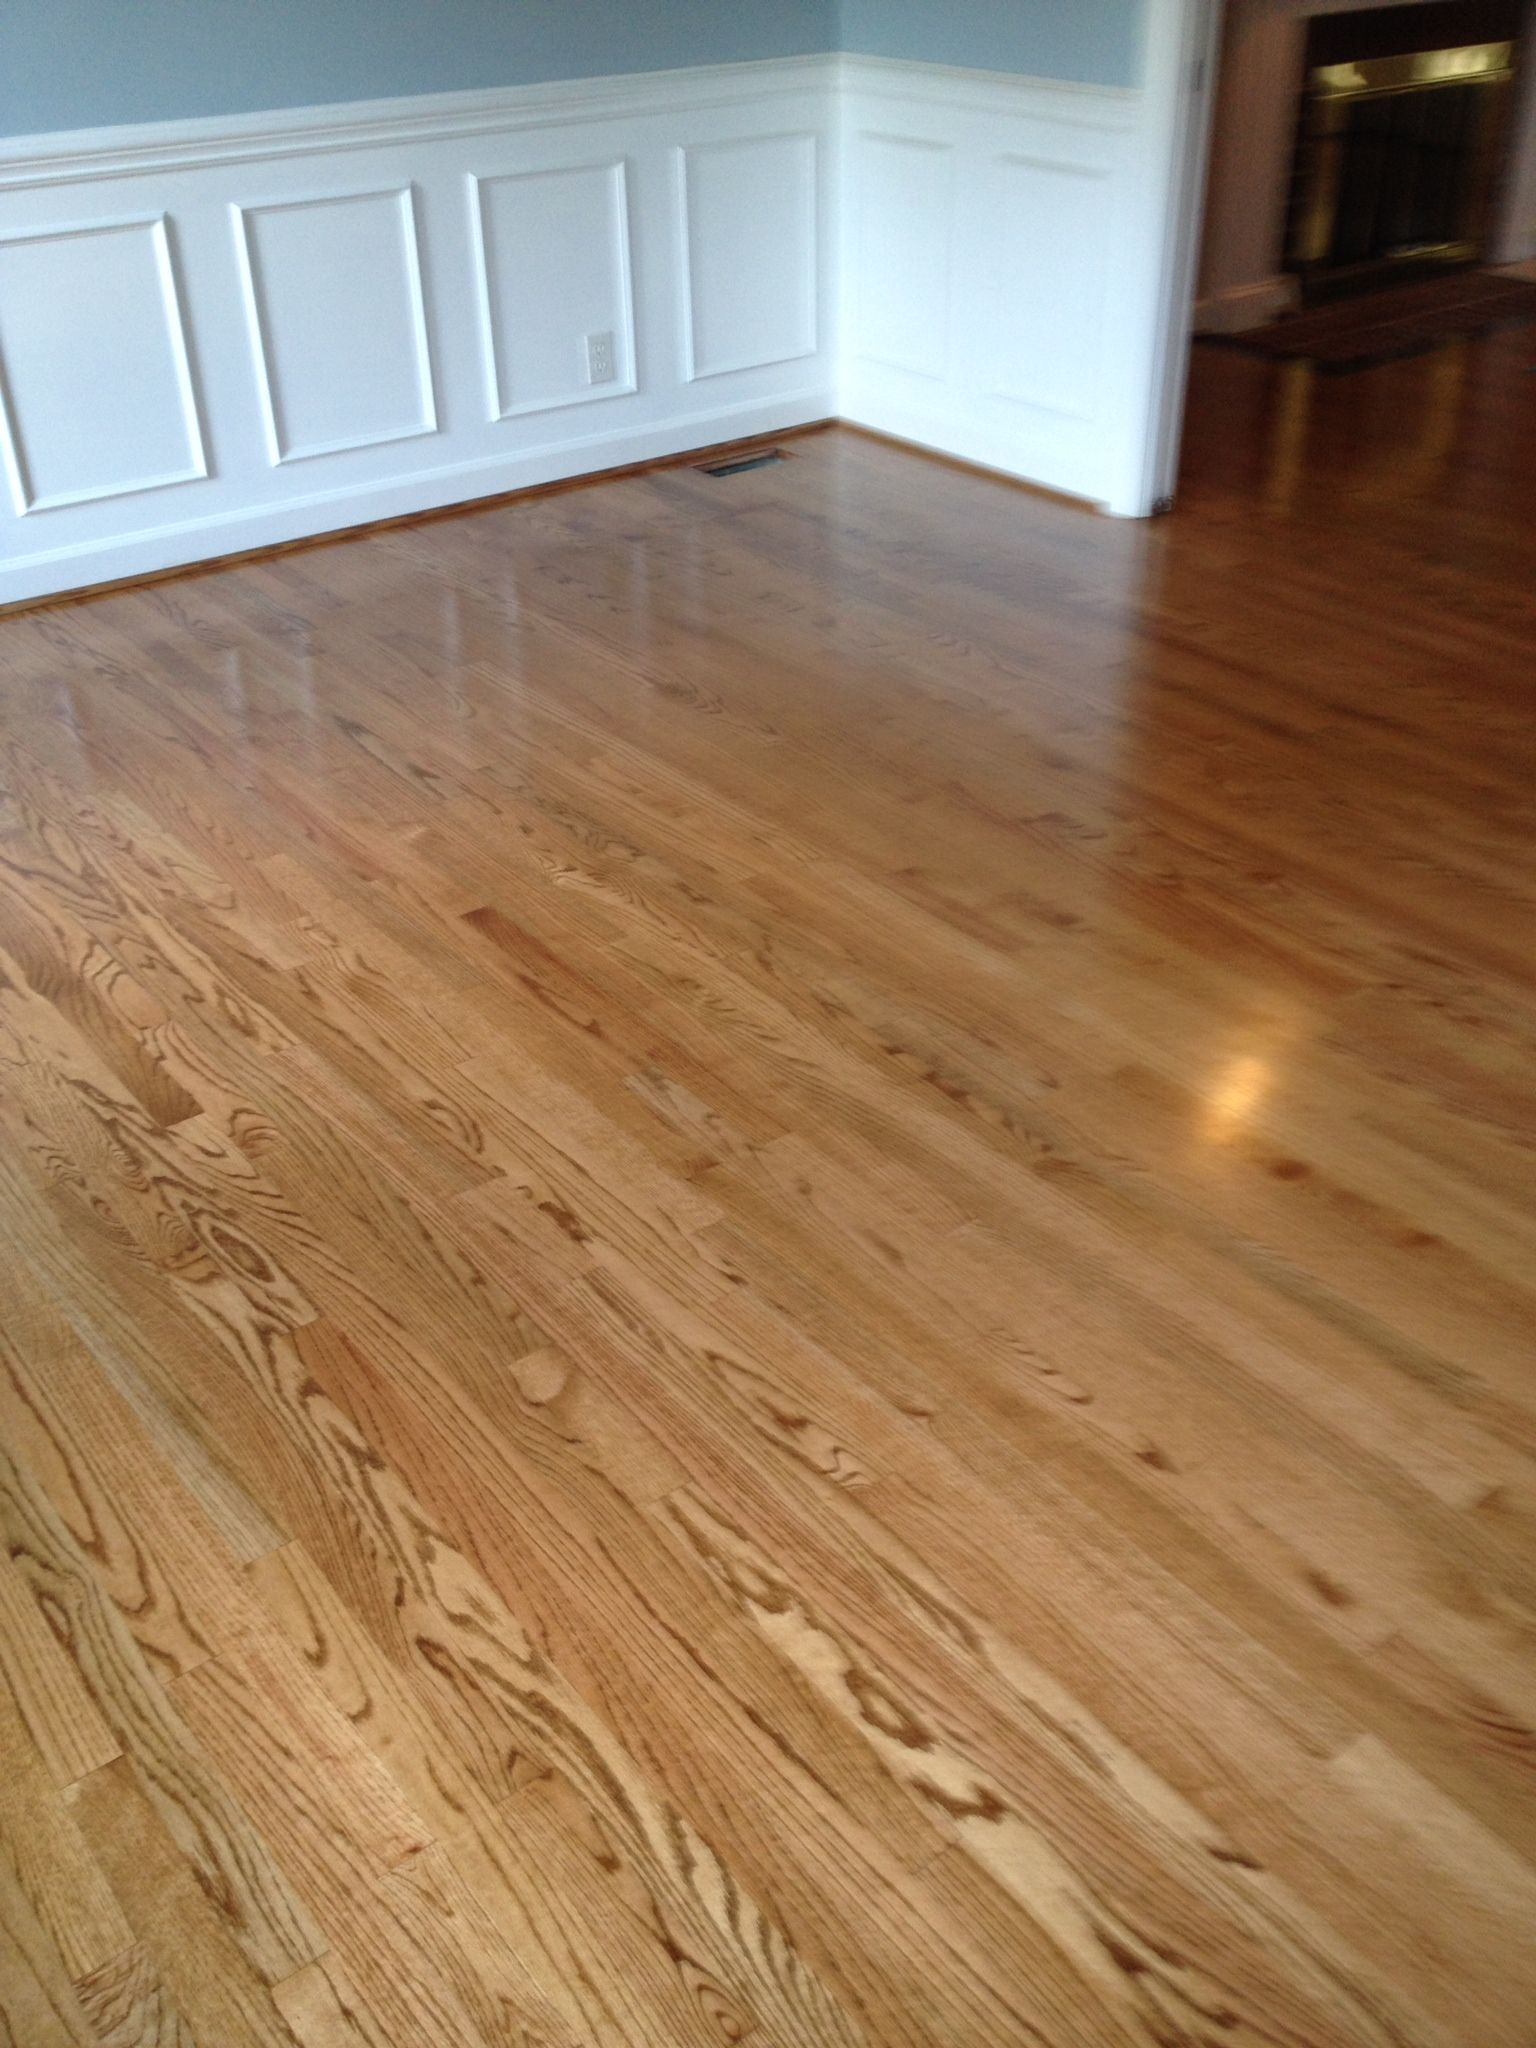 New Select And Better 2 1 4 Oak Flooring Finished On Site With 1 Coat Stain 2 Coats Semi Gloss Clear Oil And 1 Coat Semi Flooring Floor Finishes Oak Floors